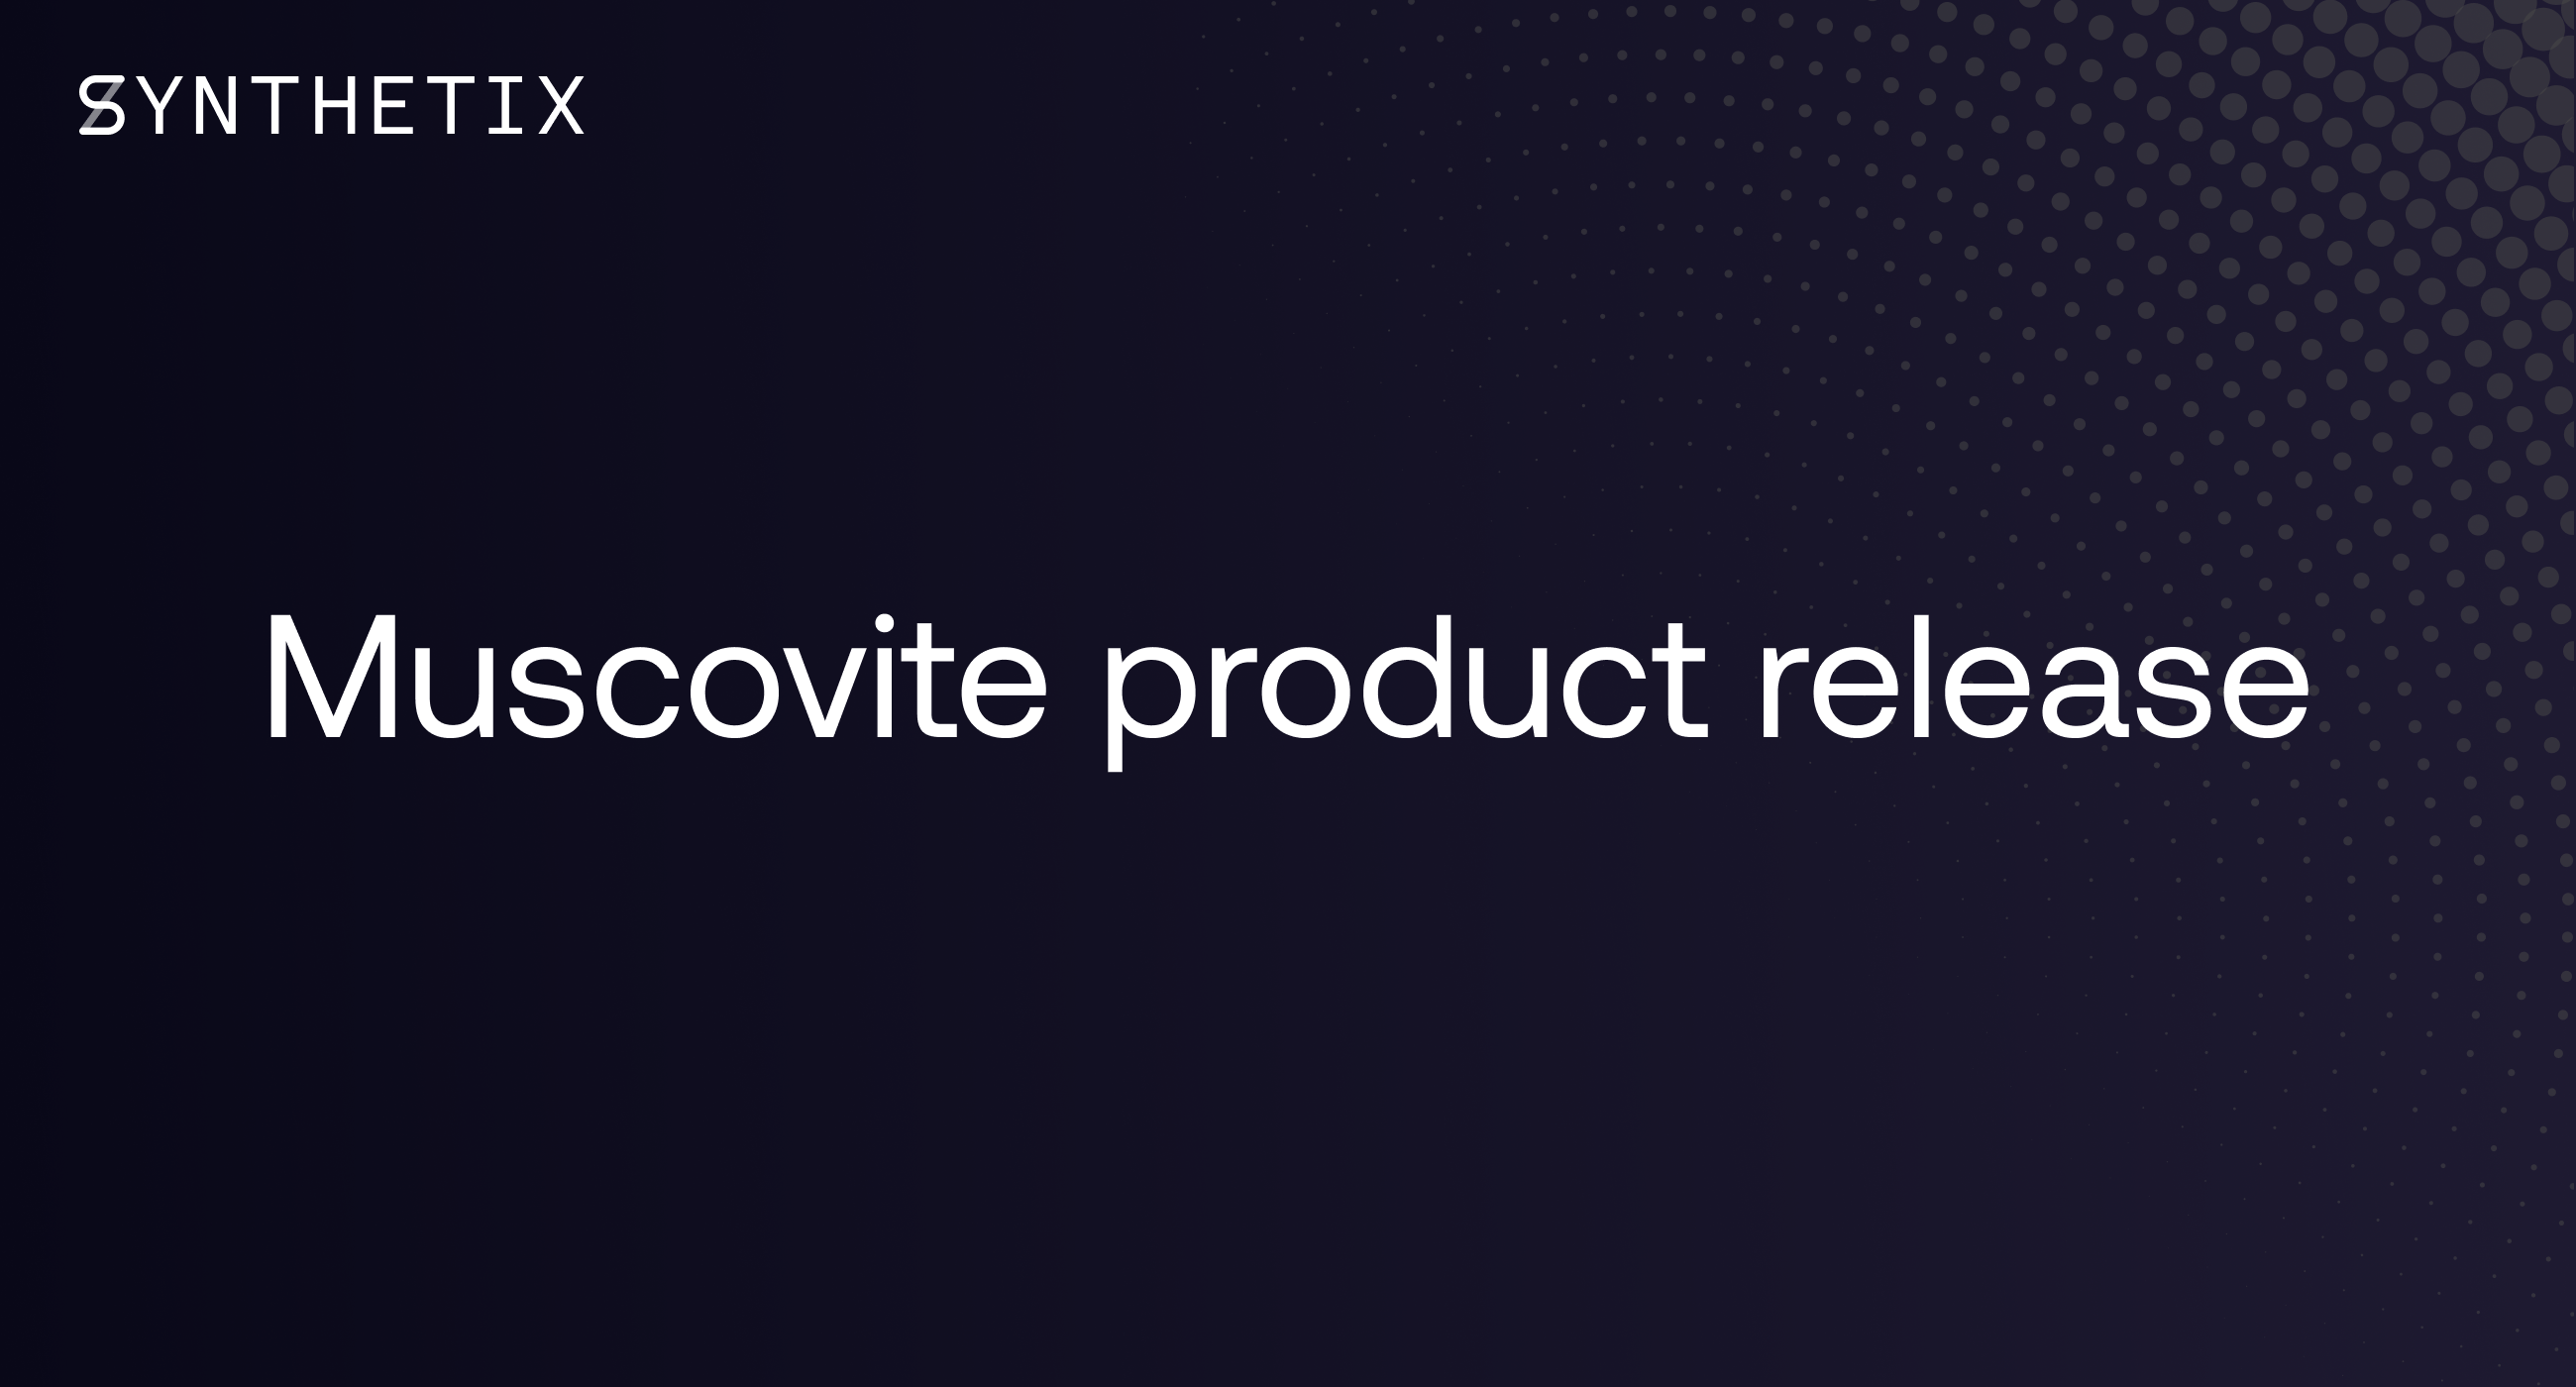 Muscovite Product Release